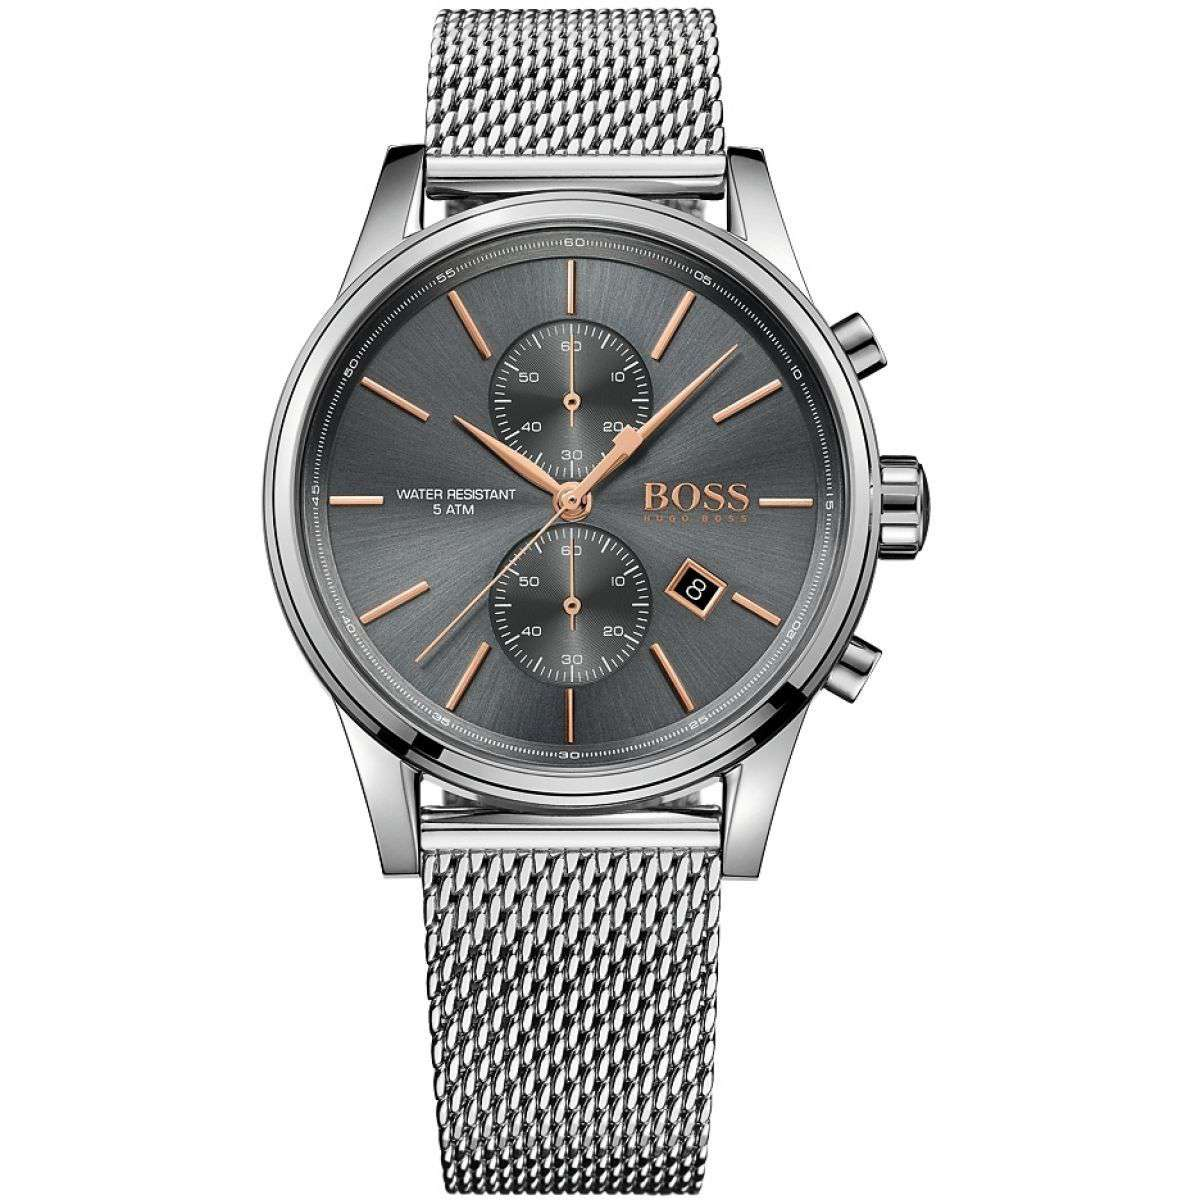 Hugo Boss Mens HB 1513440 Jet Chronograph Watch Steel Umisfashion Store